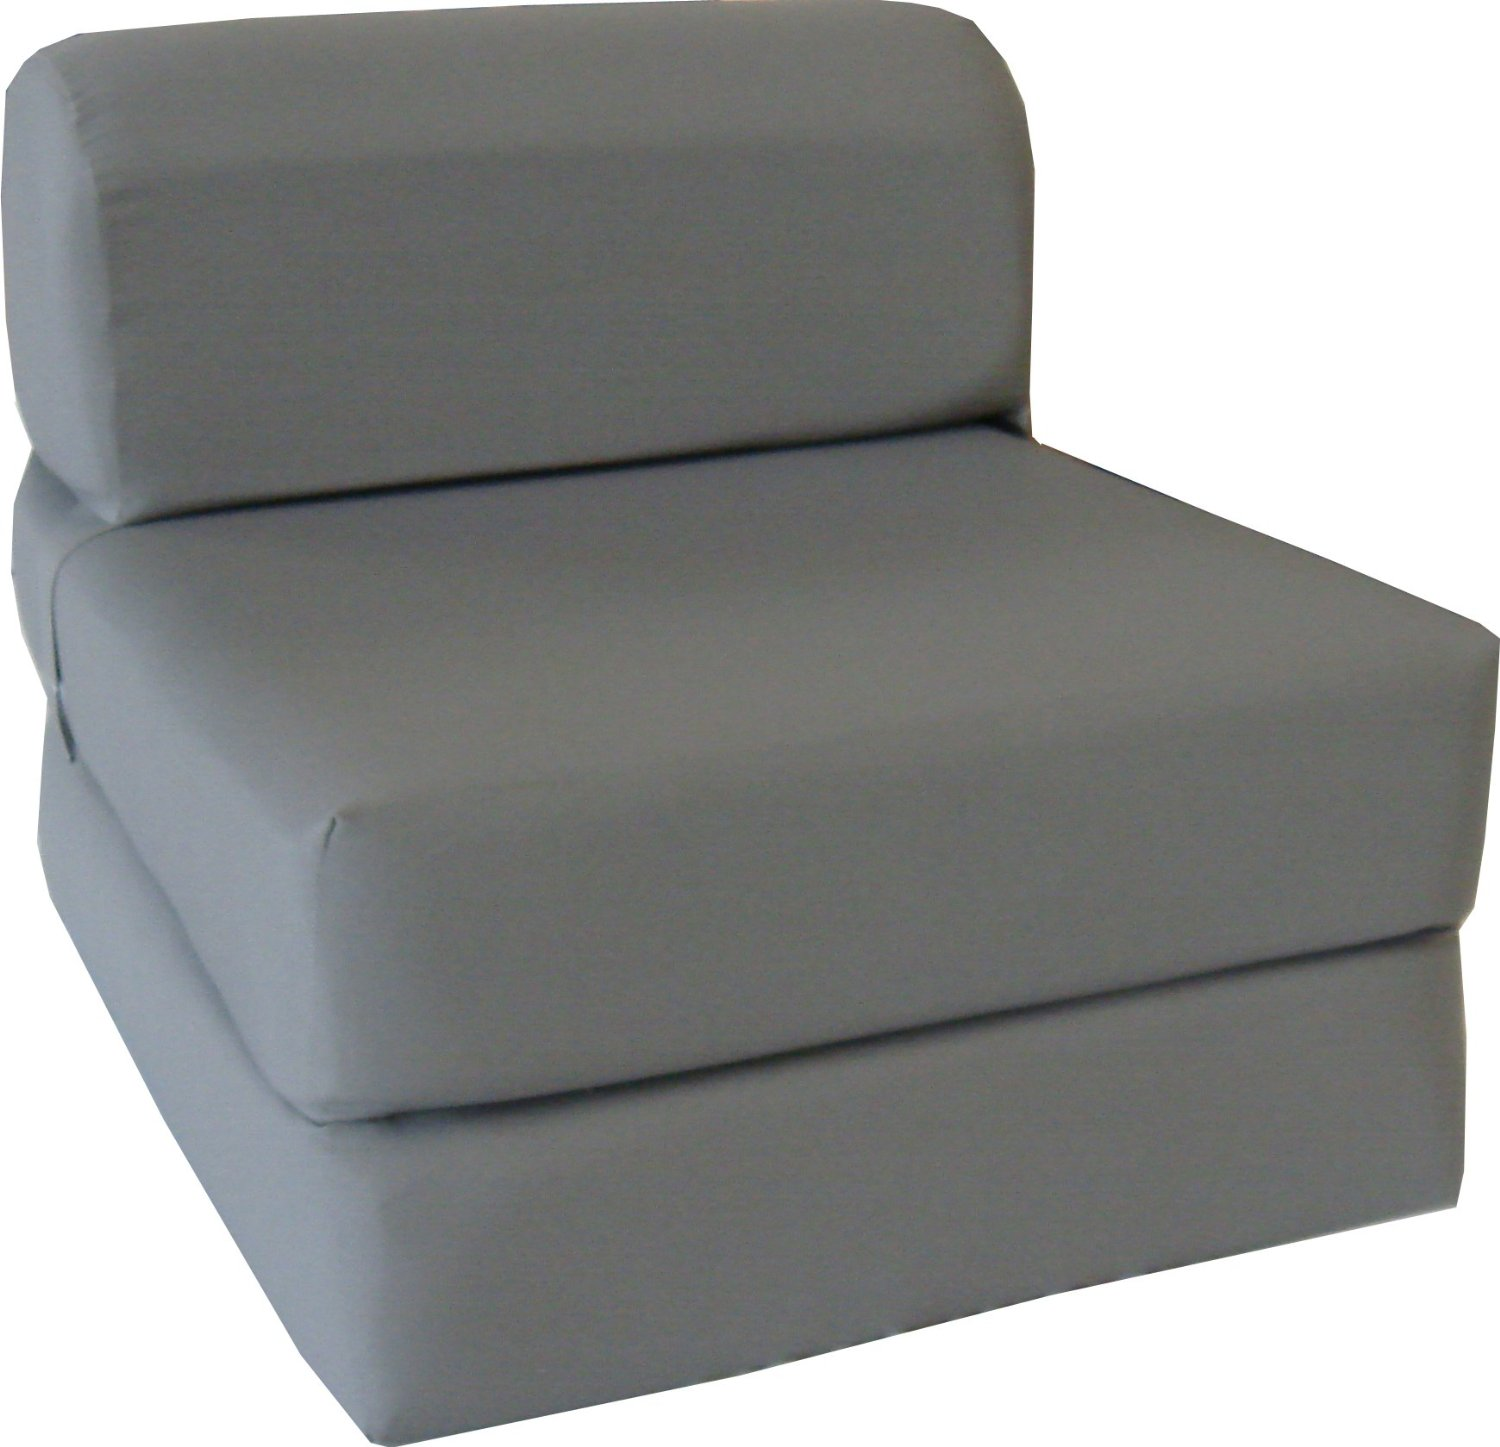 Amazon Sofa Bed Grey Amazon Gray Sleeper Chair Folding Foam Bed Sized 6